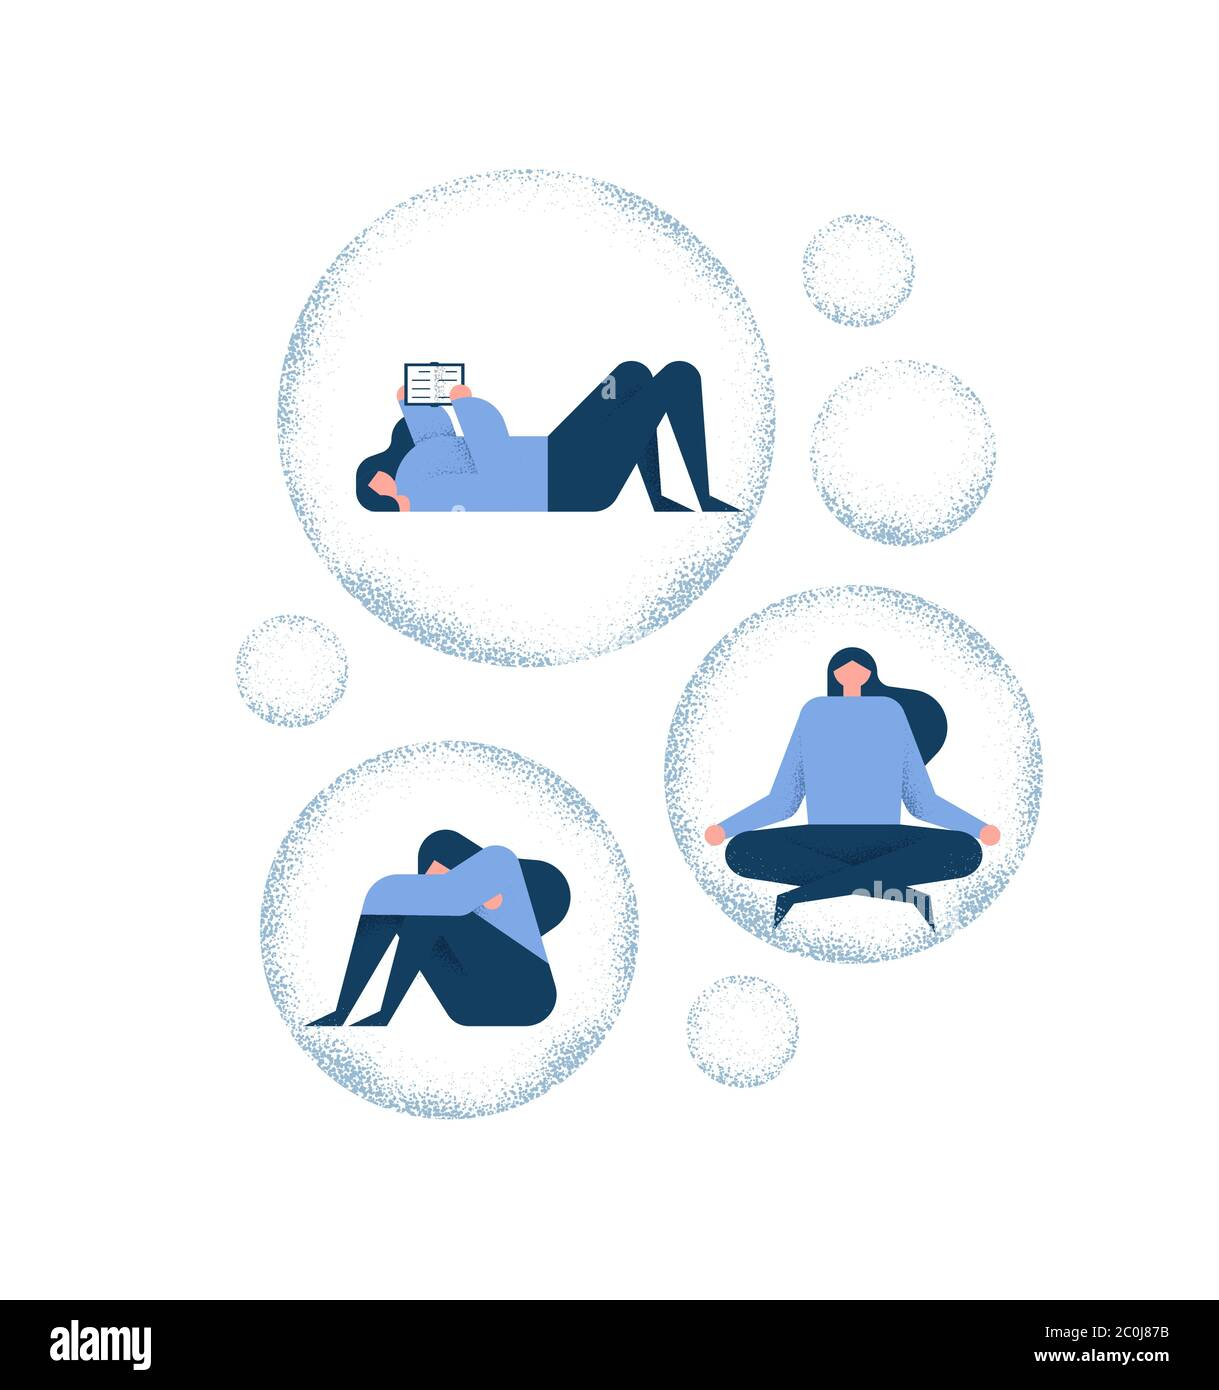 Woman Self Isolation Girl Trapped In Bubble For Psychology Or Mental Health Concept Includes Reading Book Yoga Exercise And Depression Stock Vector Image Art Alamy